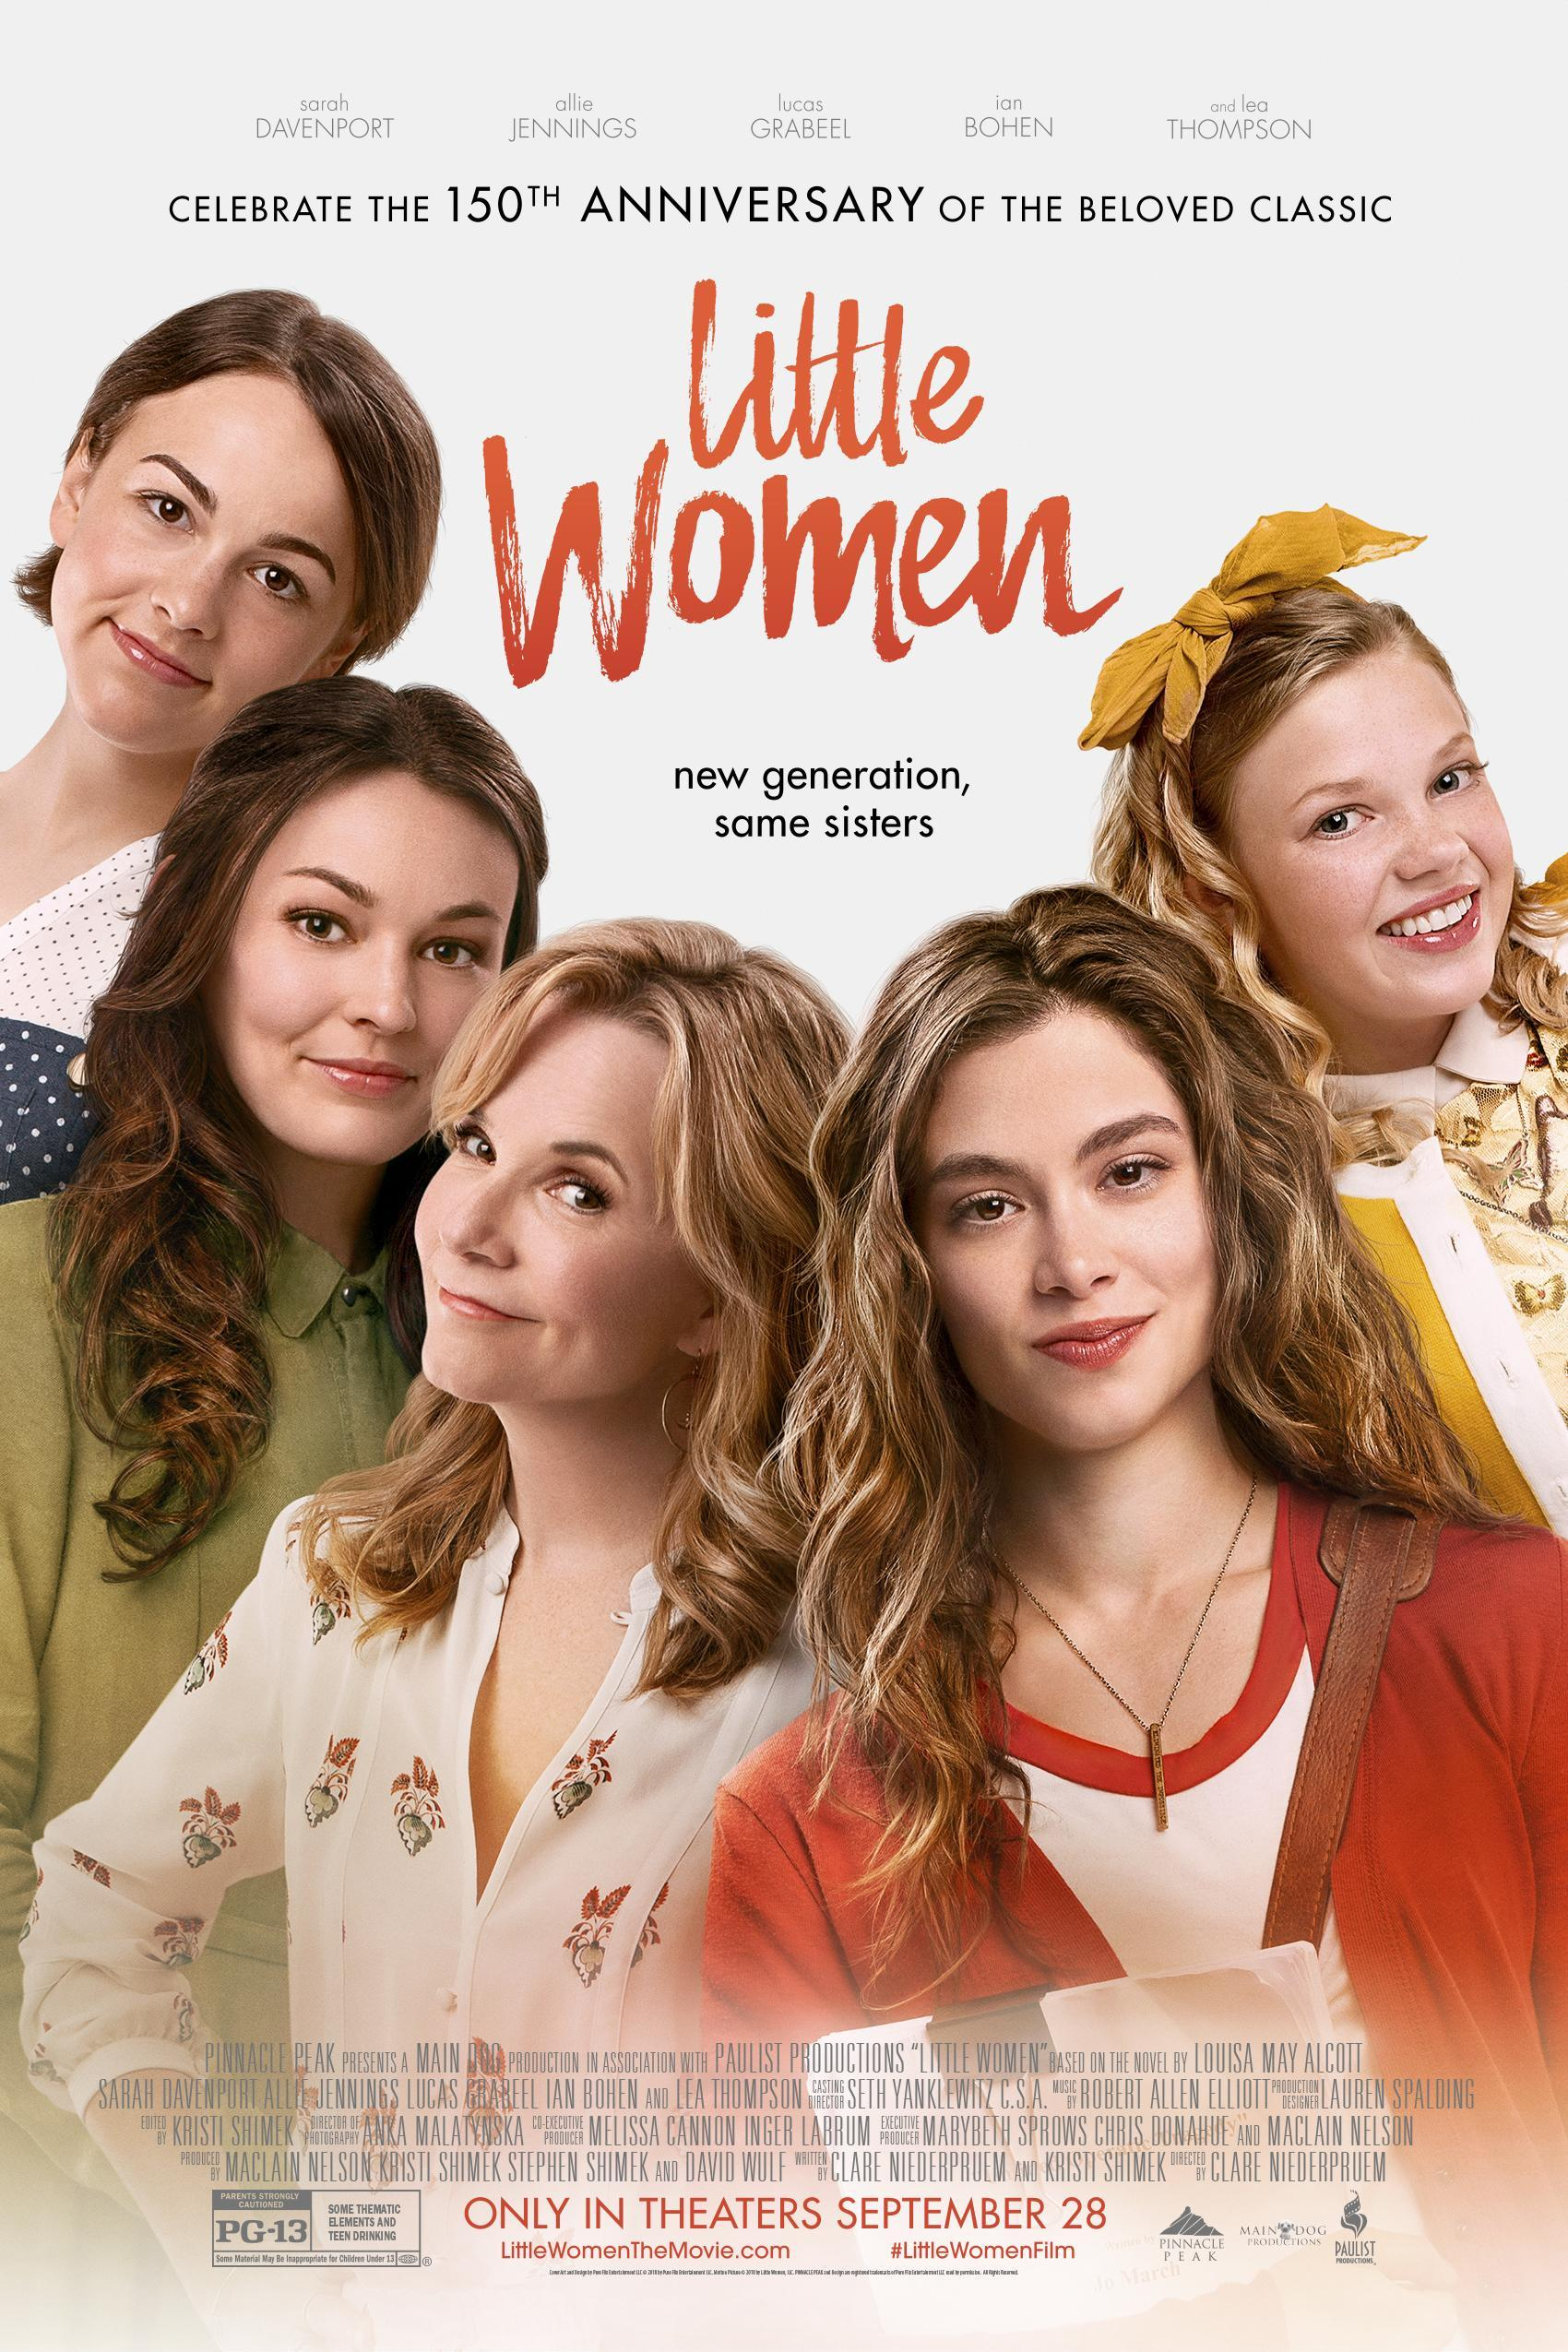 Little Women 2019 movie wallpapers